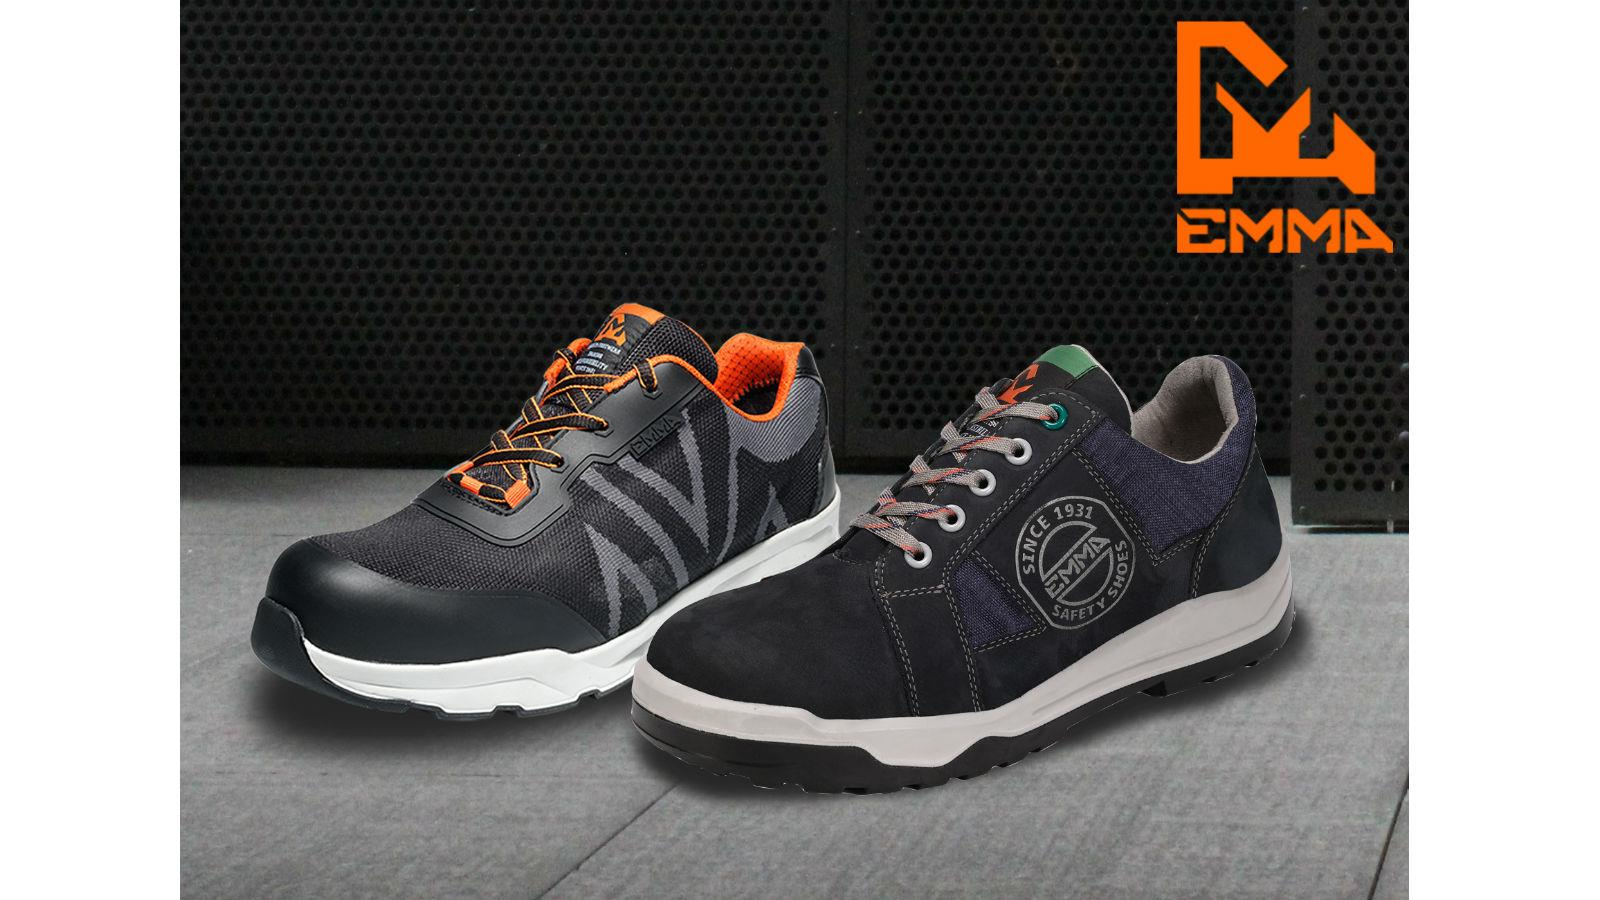 NEW EMMA Safety Footwear Added to the Hultafors Group PPE Portfolio image